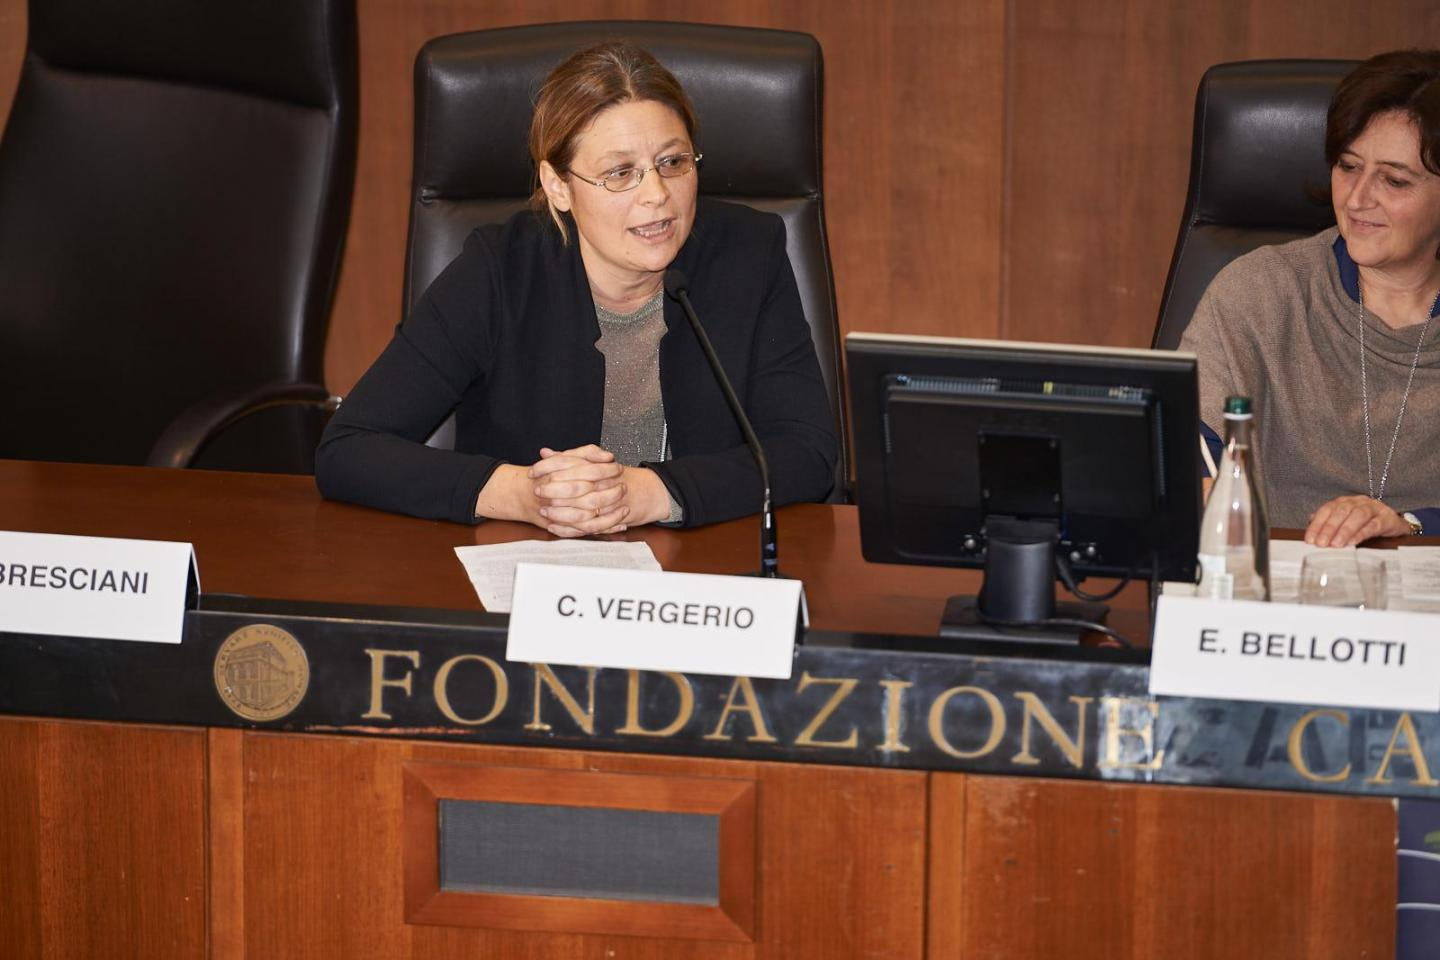 Carolina Vergerio, referent of the Garden of Vercelli